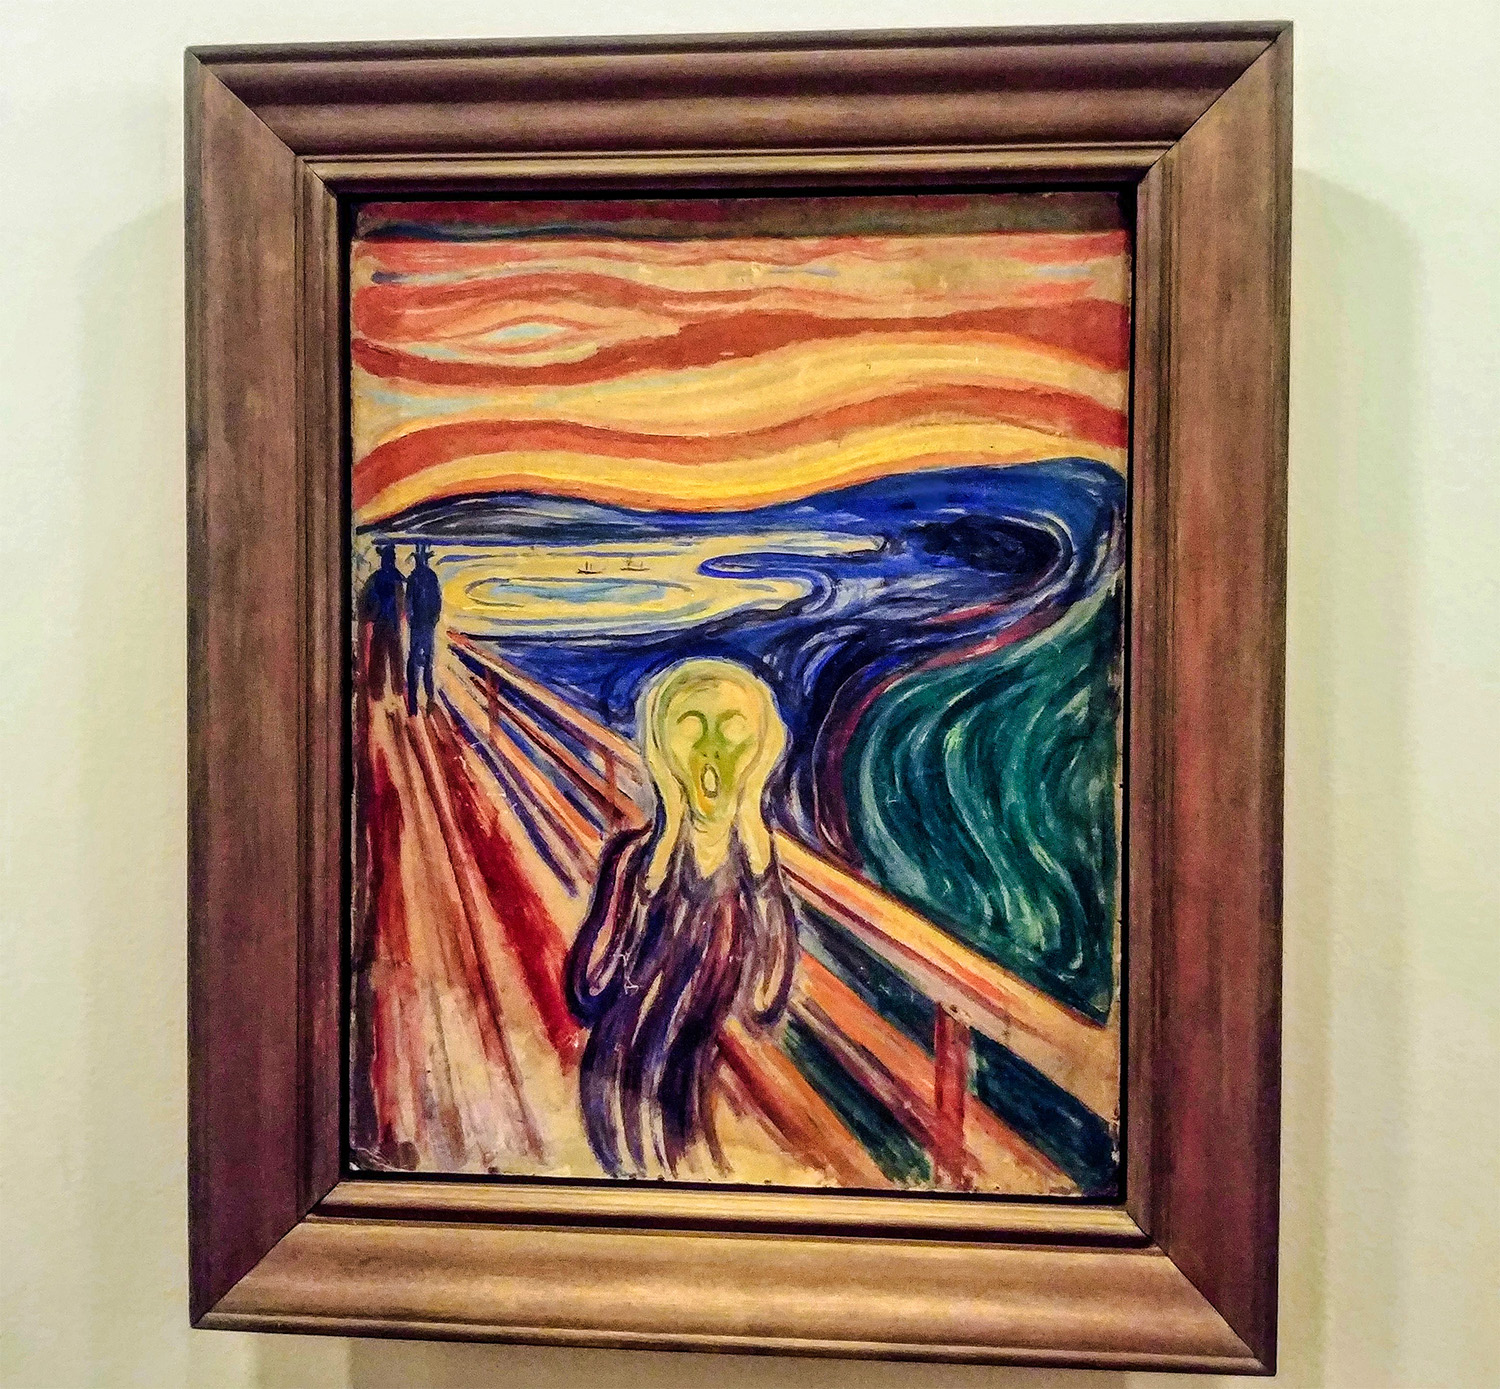 Le Cri de Munch nécessite de la distanciation physique